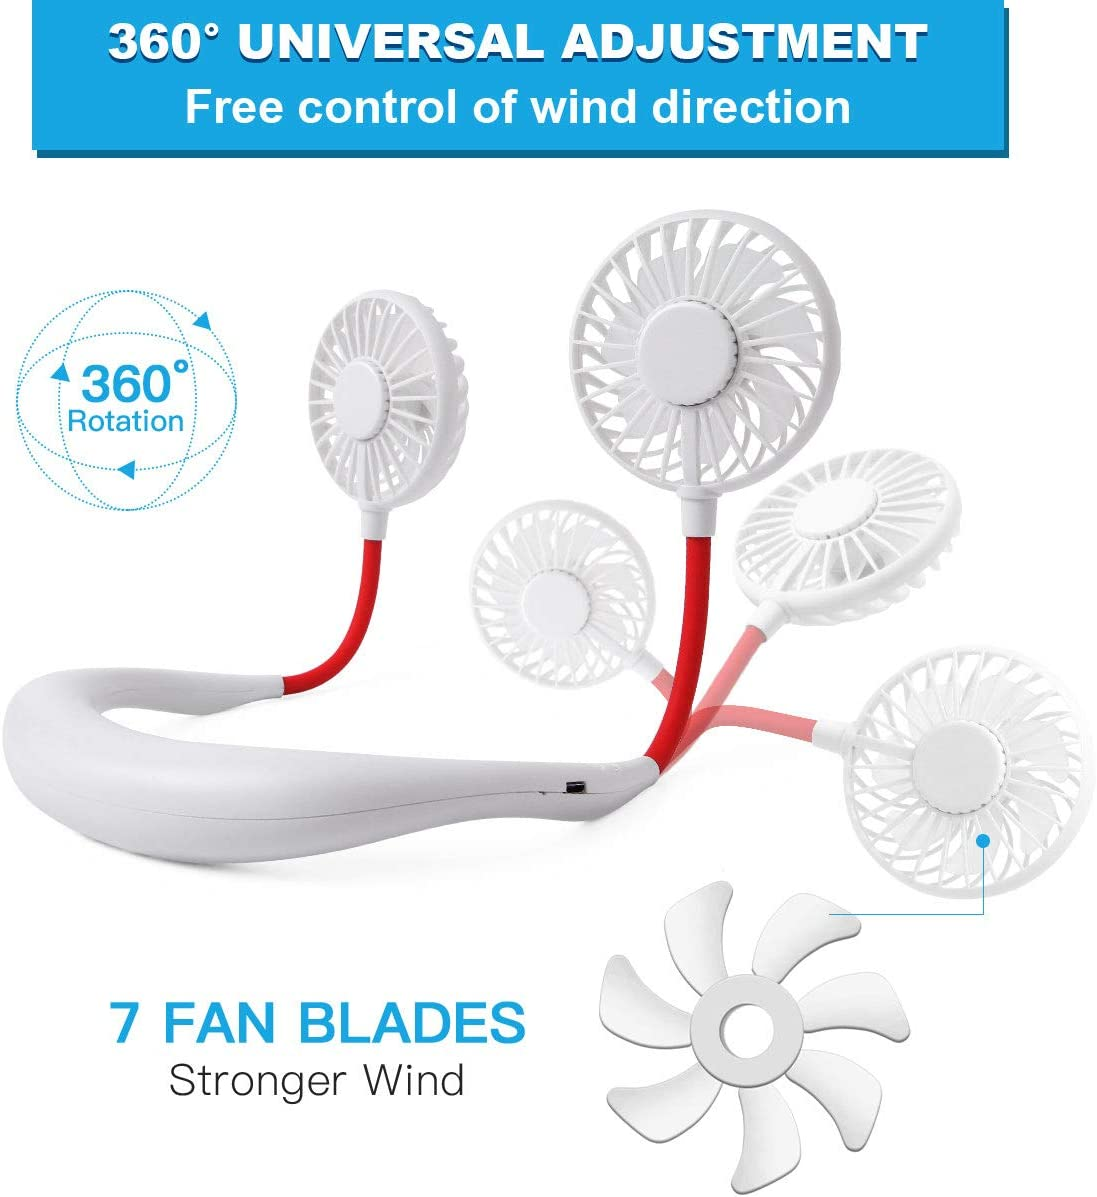 Tikduck Neck Portable Sports Fans Hand Free Mini USB Rechargeable Desk Fan Headphone Design Wearable Small Personal Table Travel Office Room Household Cooling Folding Electric Airflow (White): Kitchen & Dining